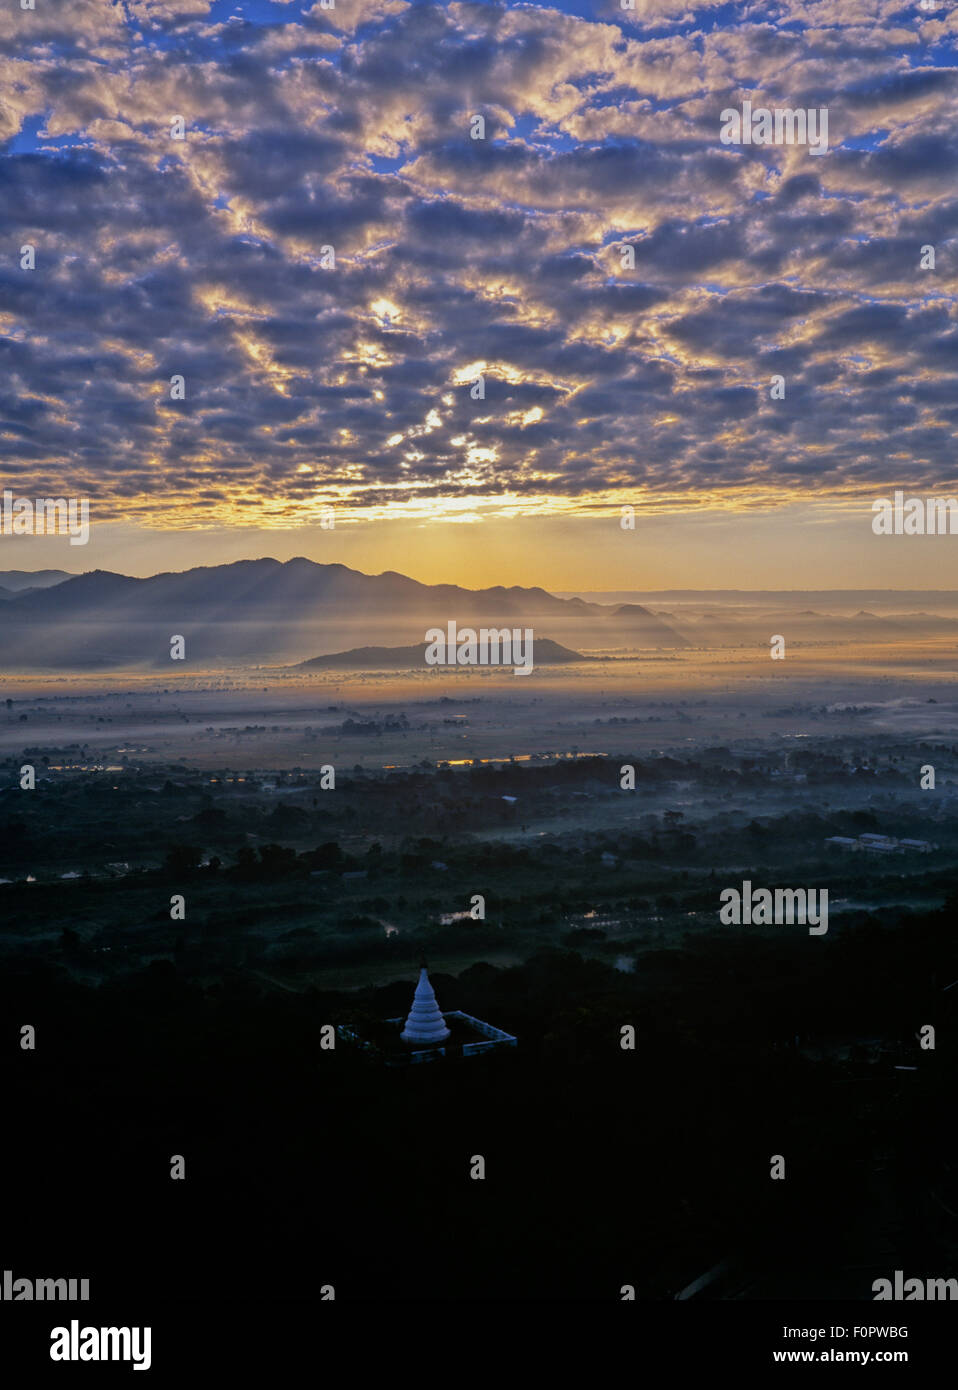 Mandalay Hill, sunset, outlook, sunlight, - Stock Image